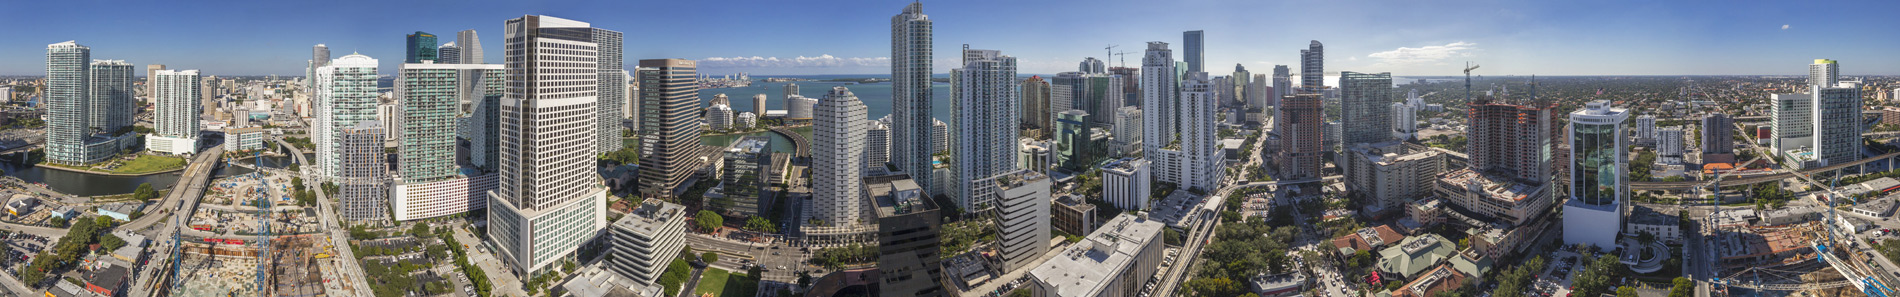 miami florida condo future views with 360 panoramic Shereical